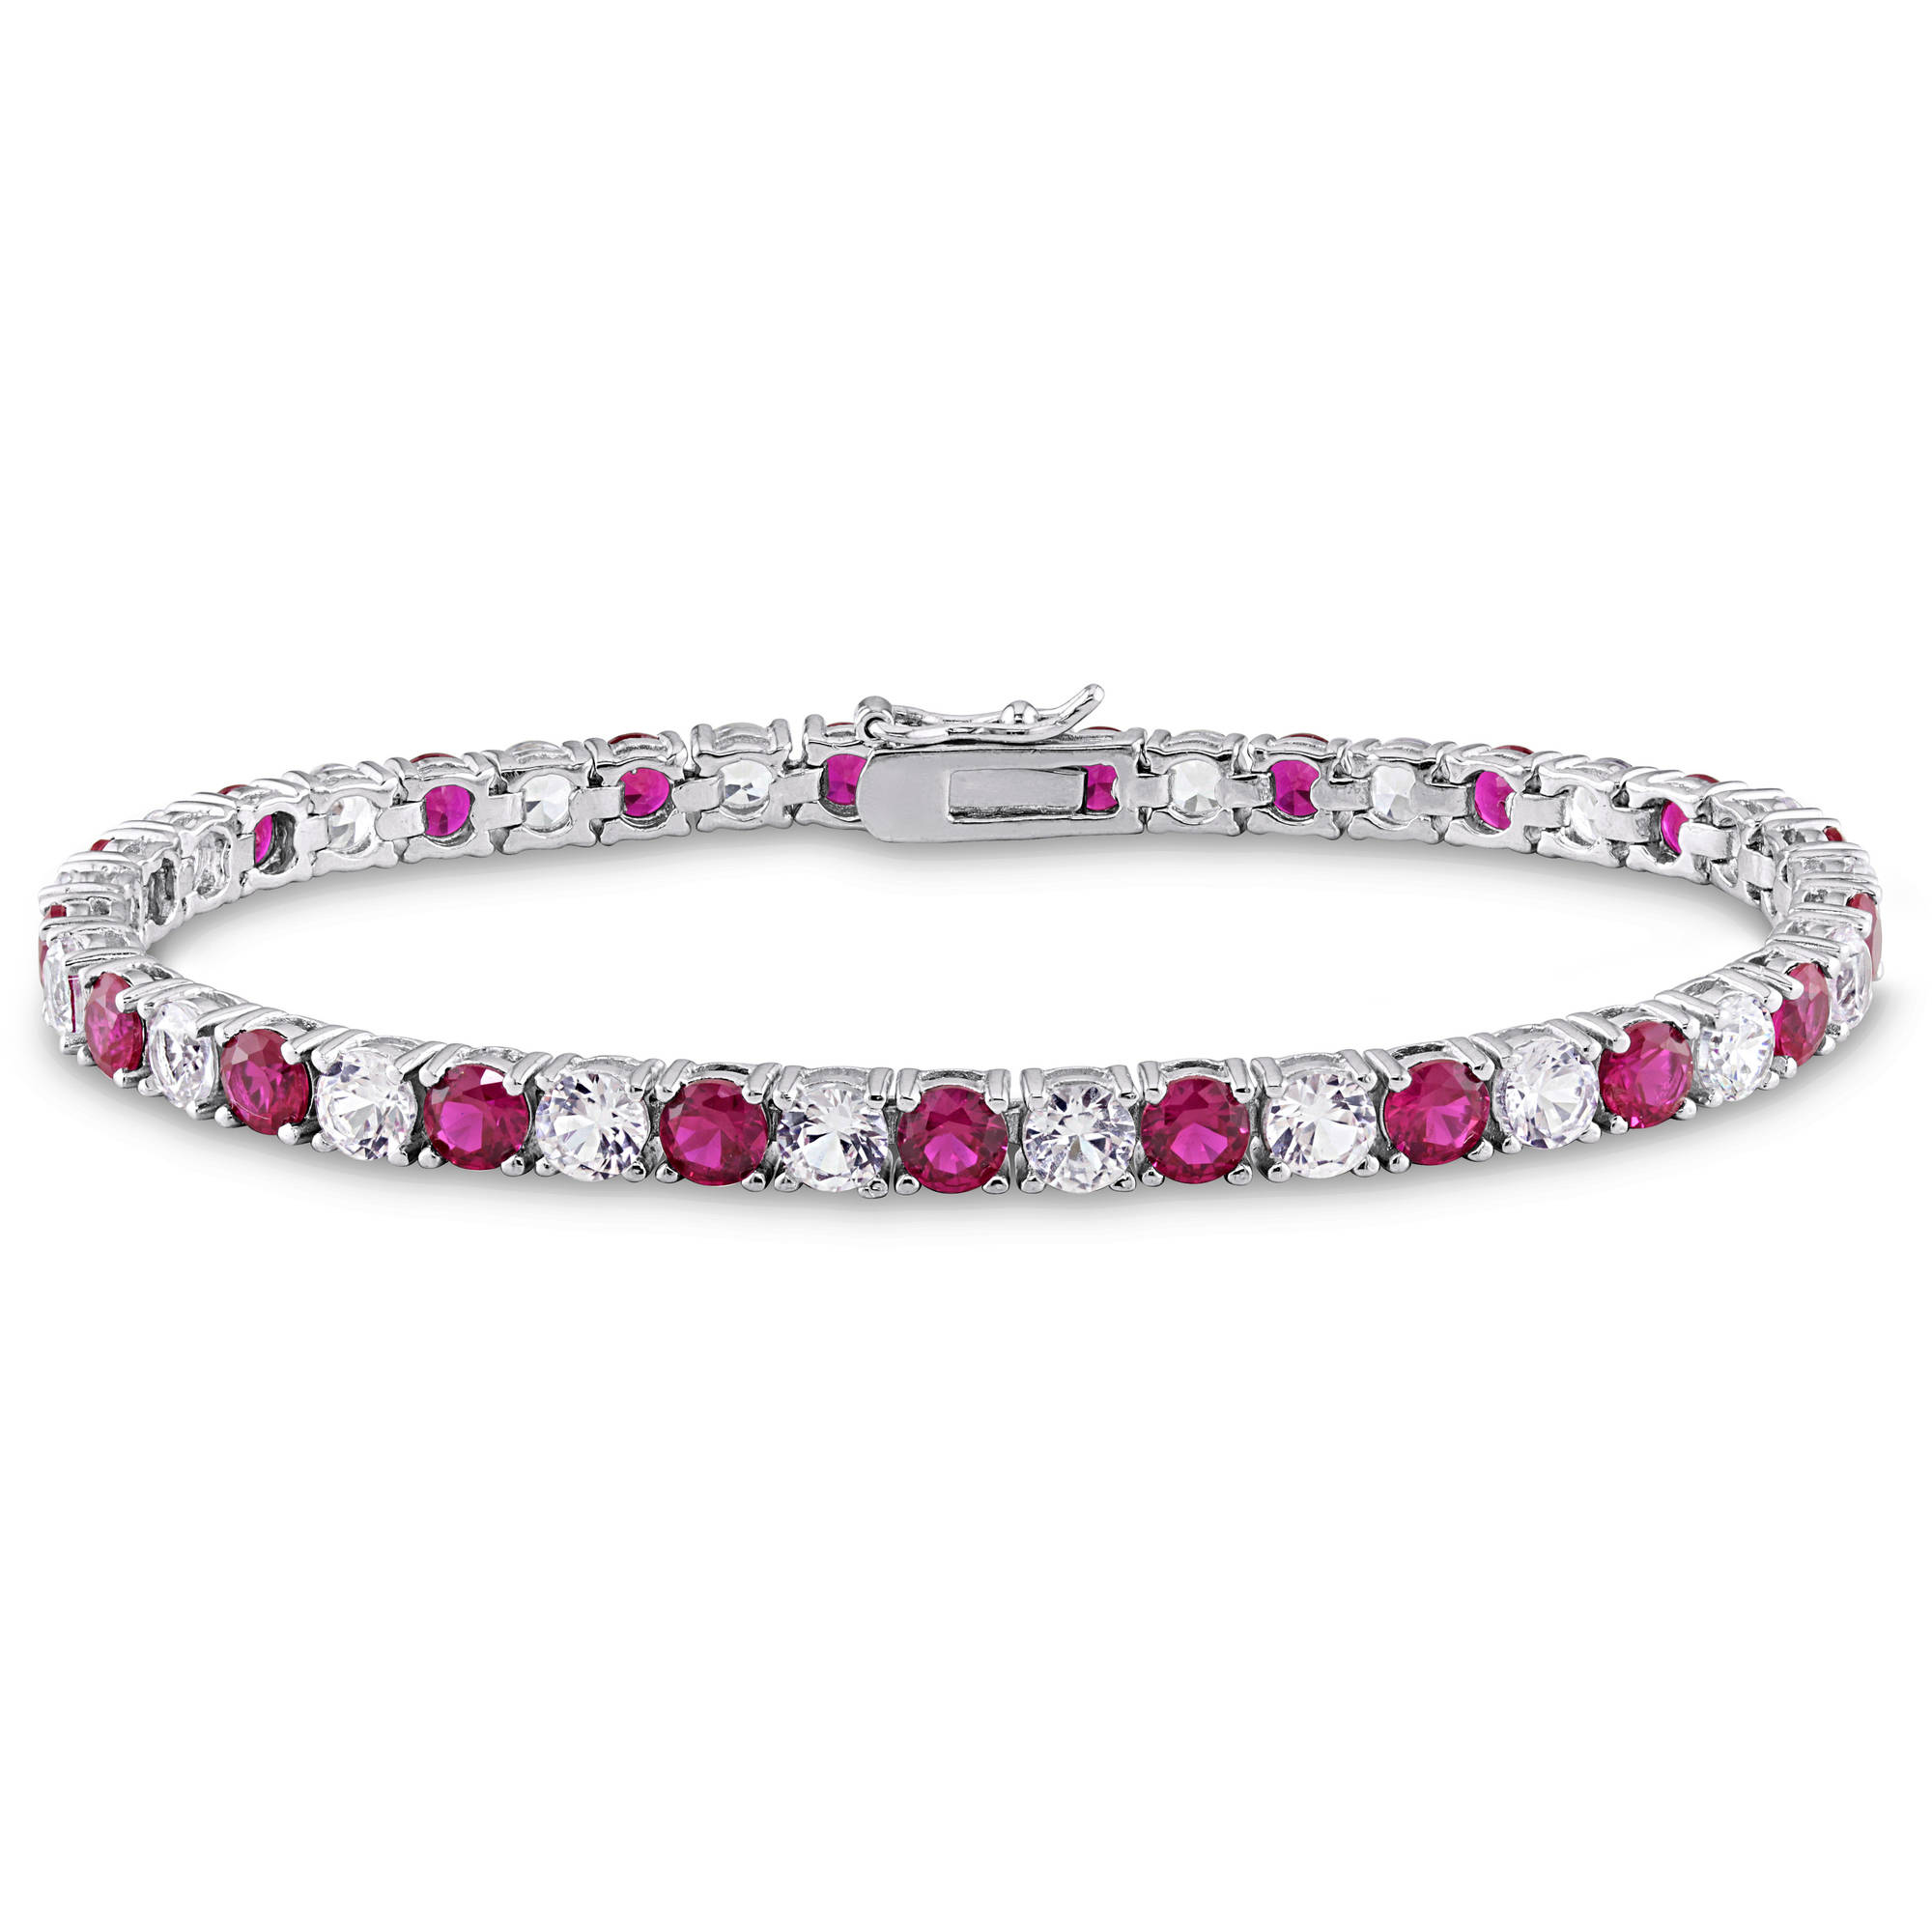 """Tangelo 14-1 2 Carat T.G.W. Created White Sapphire and Ruby Sterling Silver Tennis Bracelet, 7.25"""" by Delmar Manufacturing LLC"""